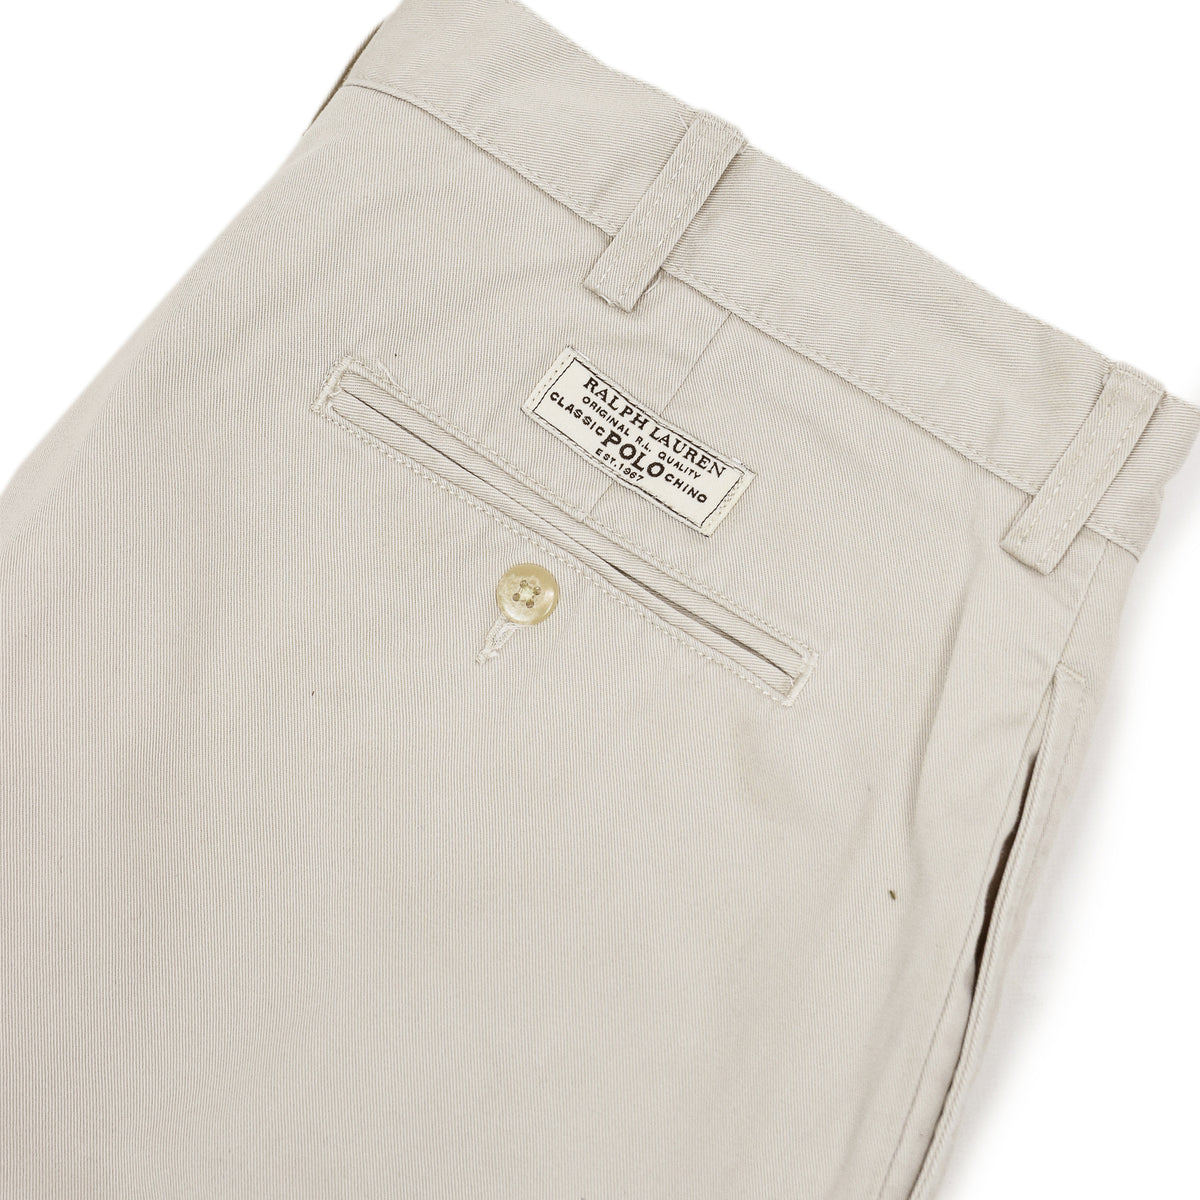 Vintage 90s Polo Ralph Lauren Tyler Cotton Double Pleated Chino Shorts 34 W back pocket